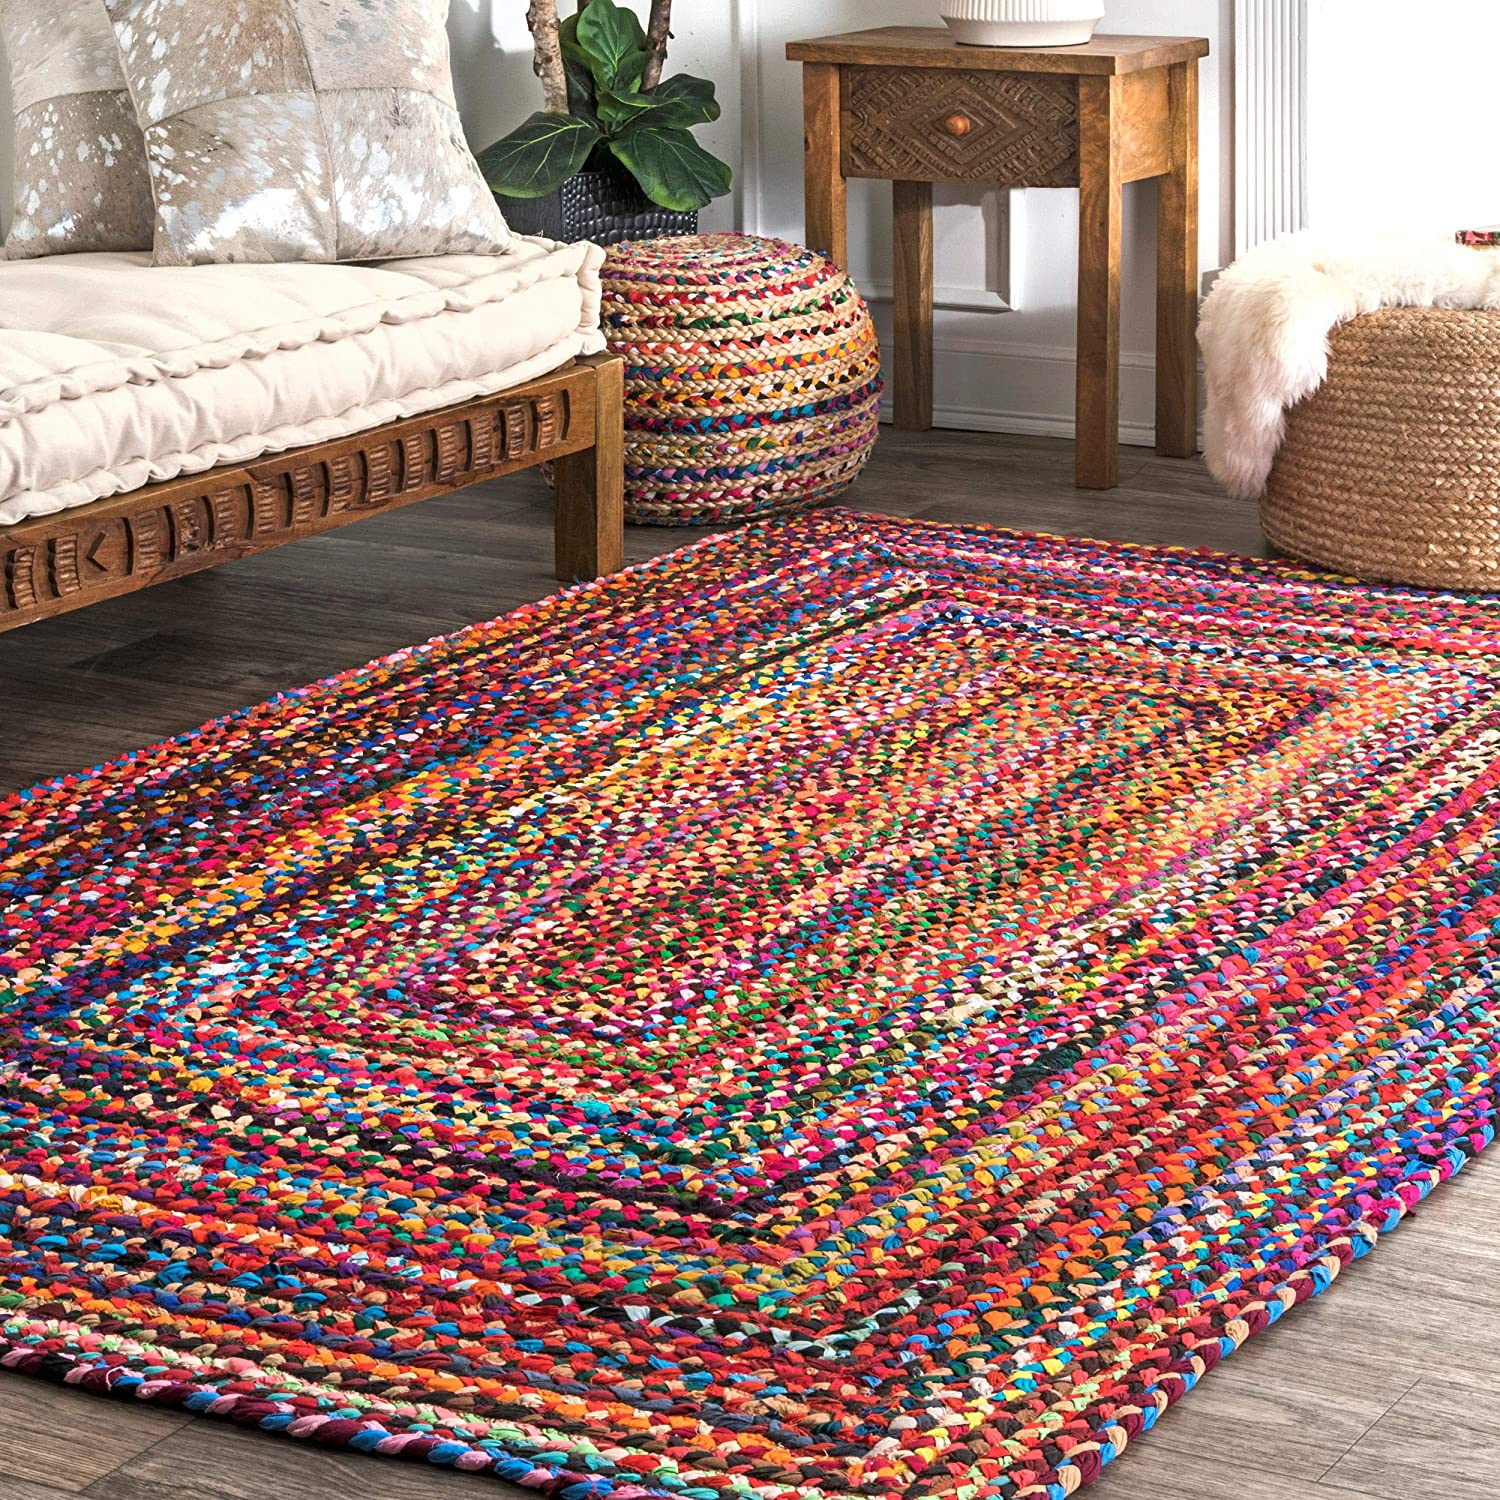 nuLOOM Hand Braided Bohemian Colorful Cotton Area Rug, Multi, 2' x 3'